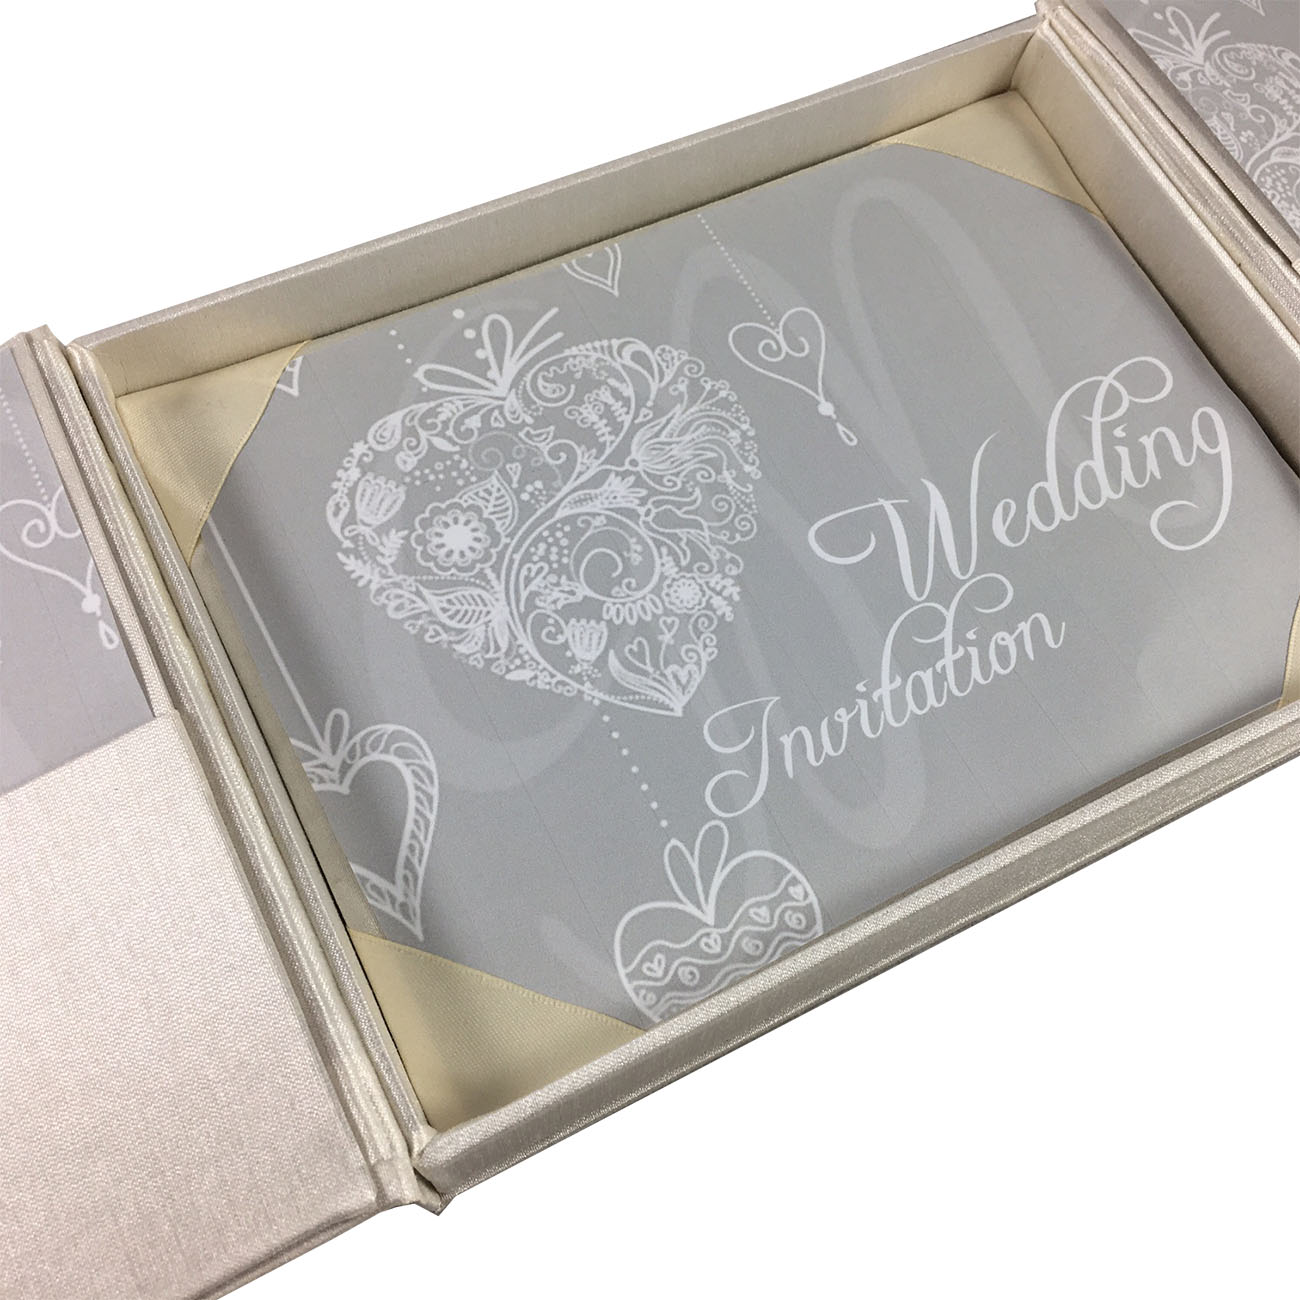 interior of boxed invitation design